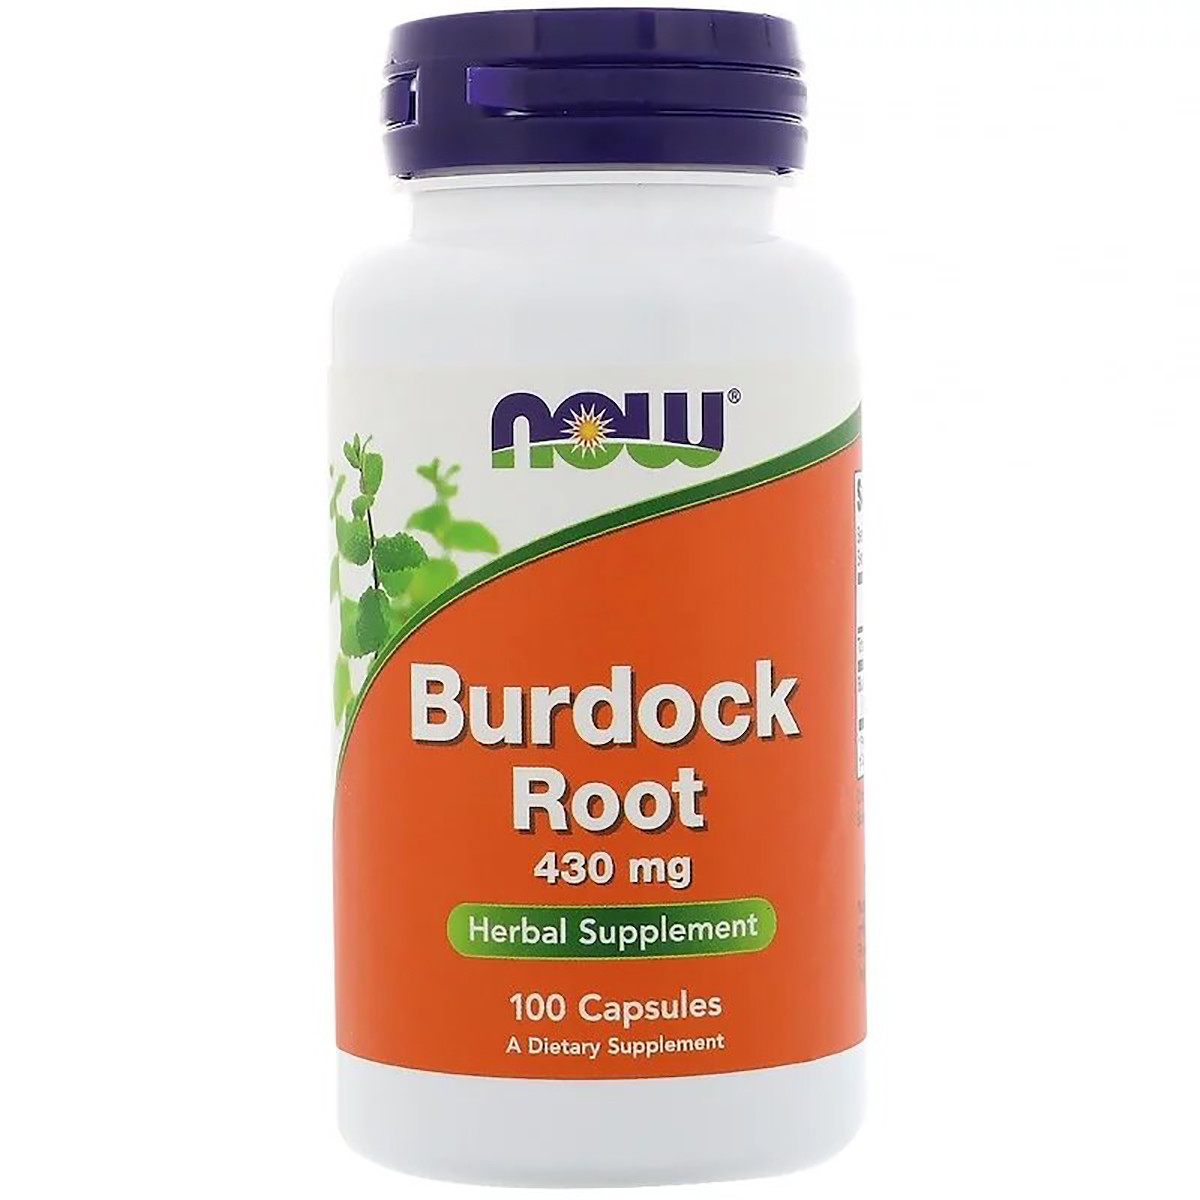 Корень лопуха 430мг, Now Foods, Burdock Root, 100 капсул